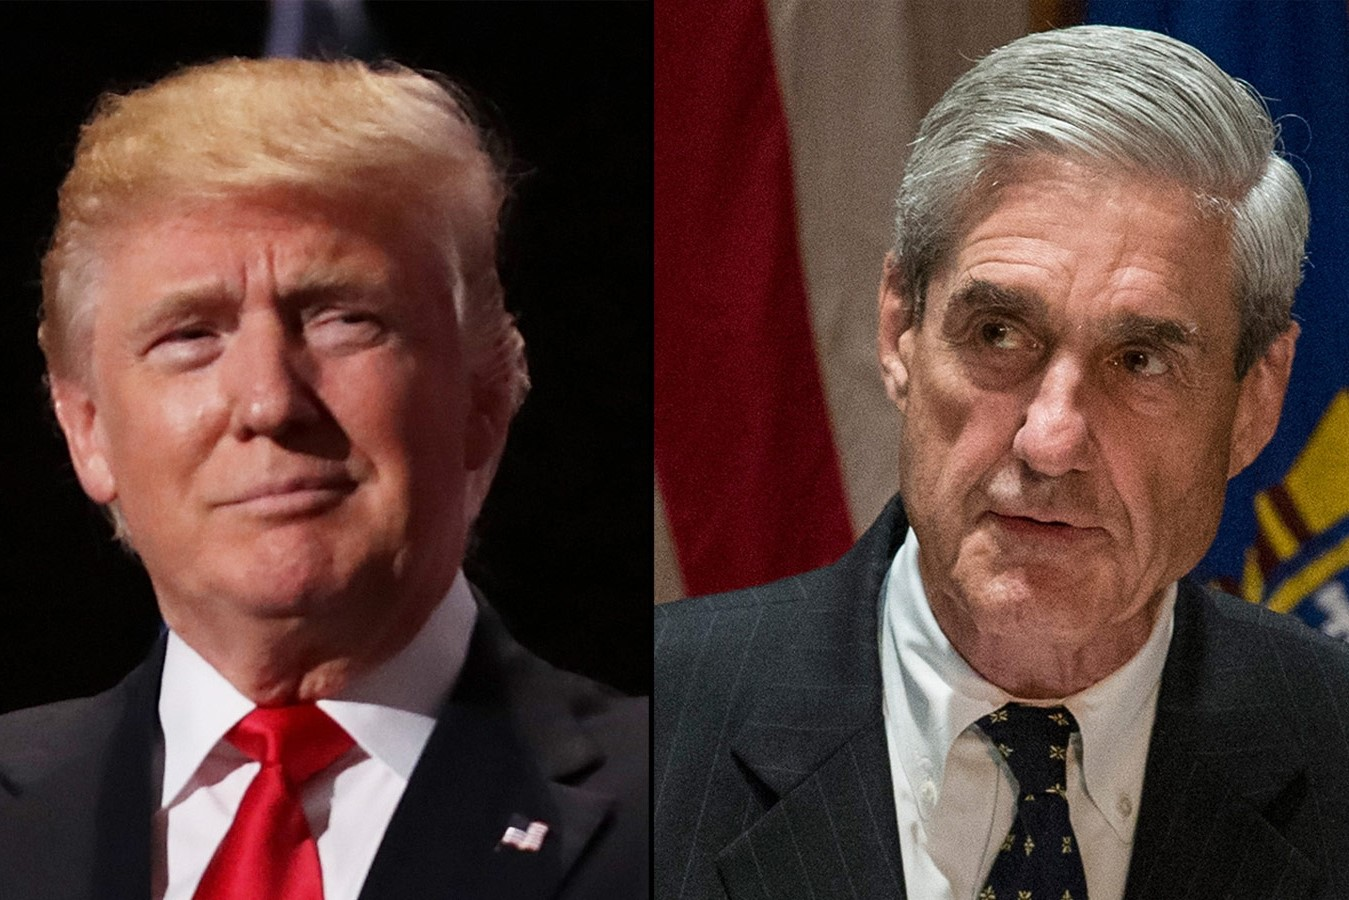 Will Trump agree to sit for an interview with Special Counsel Robert Mueller over Russia investigation?